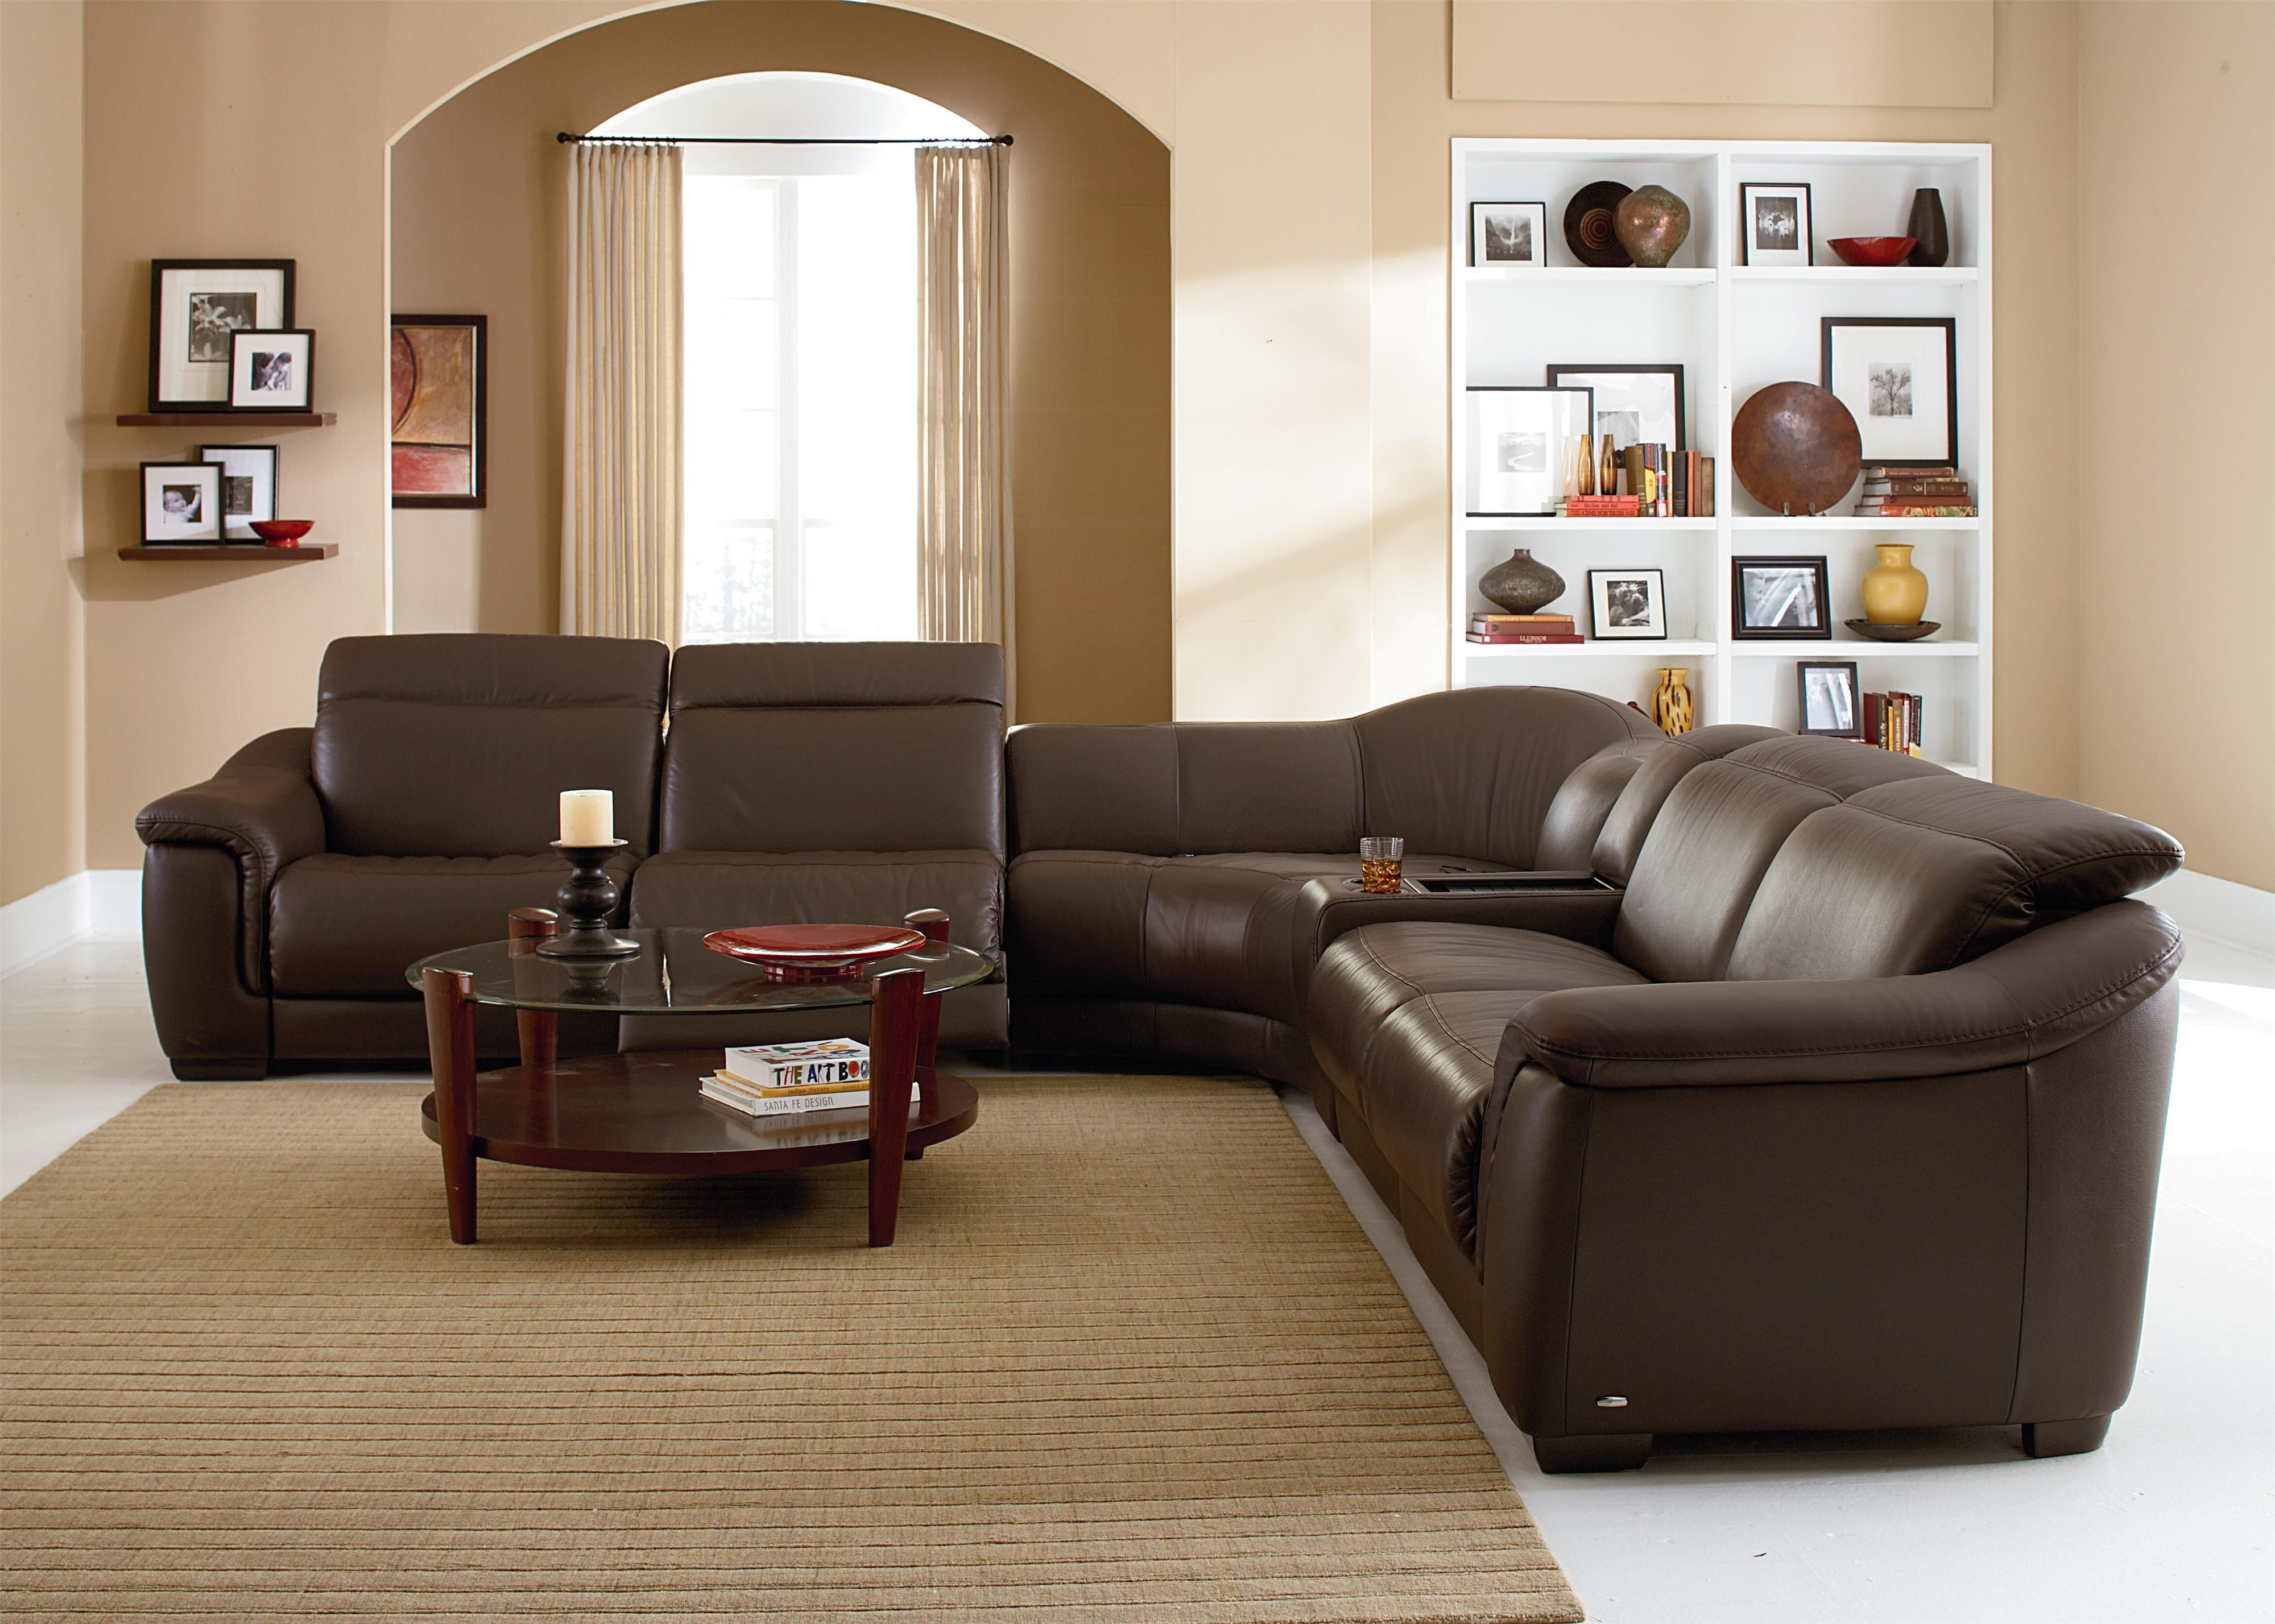 B641 Contemporary Leather Reclining Sectional Sofa With Built In